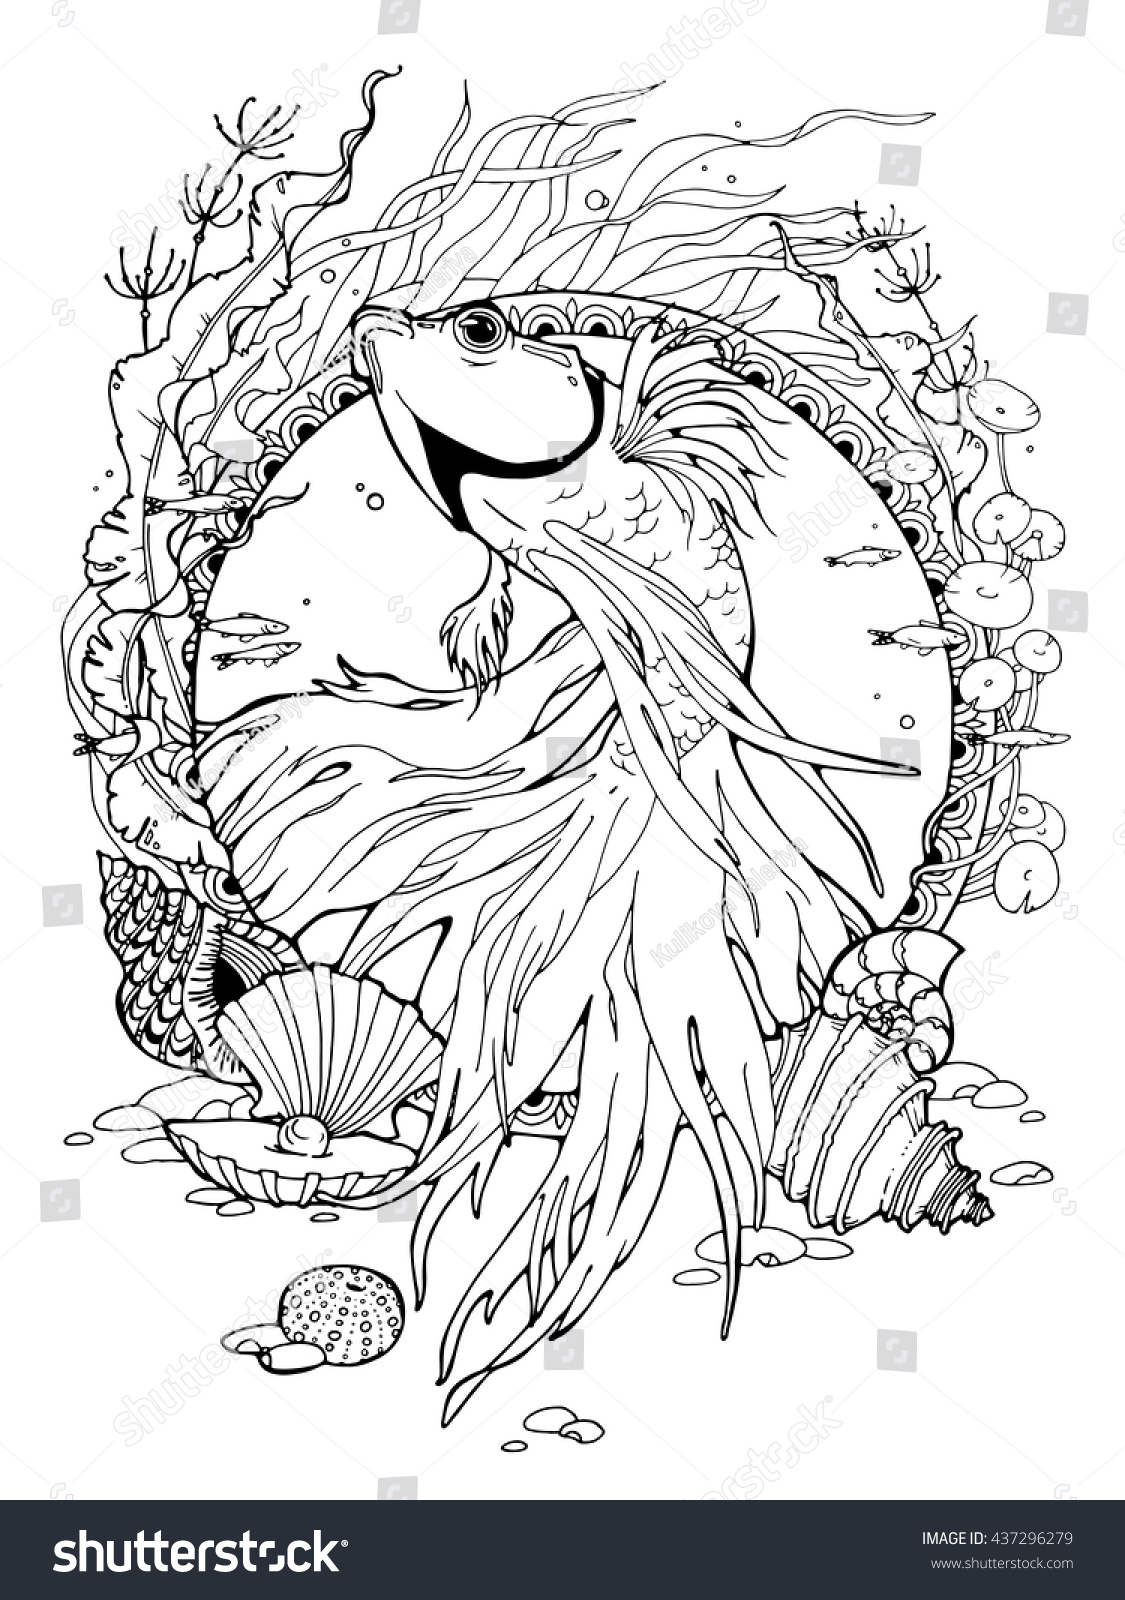 Coloring Page About Betta Fish Different Stock Vector 437296279